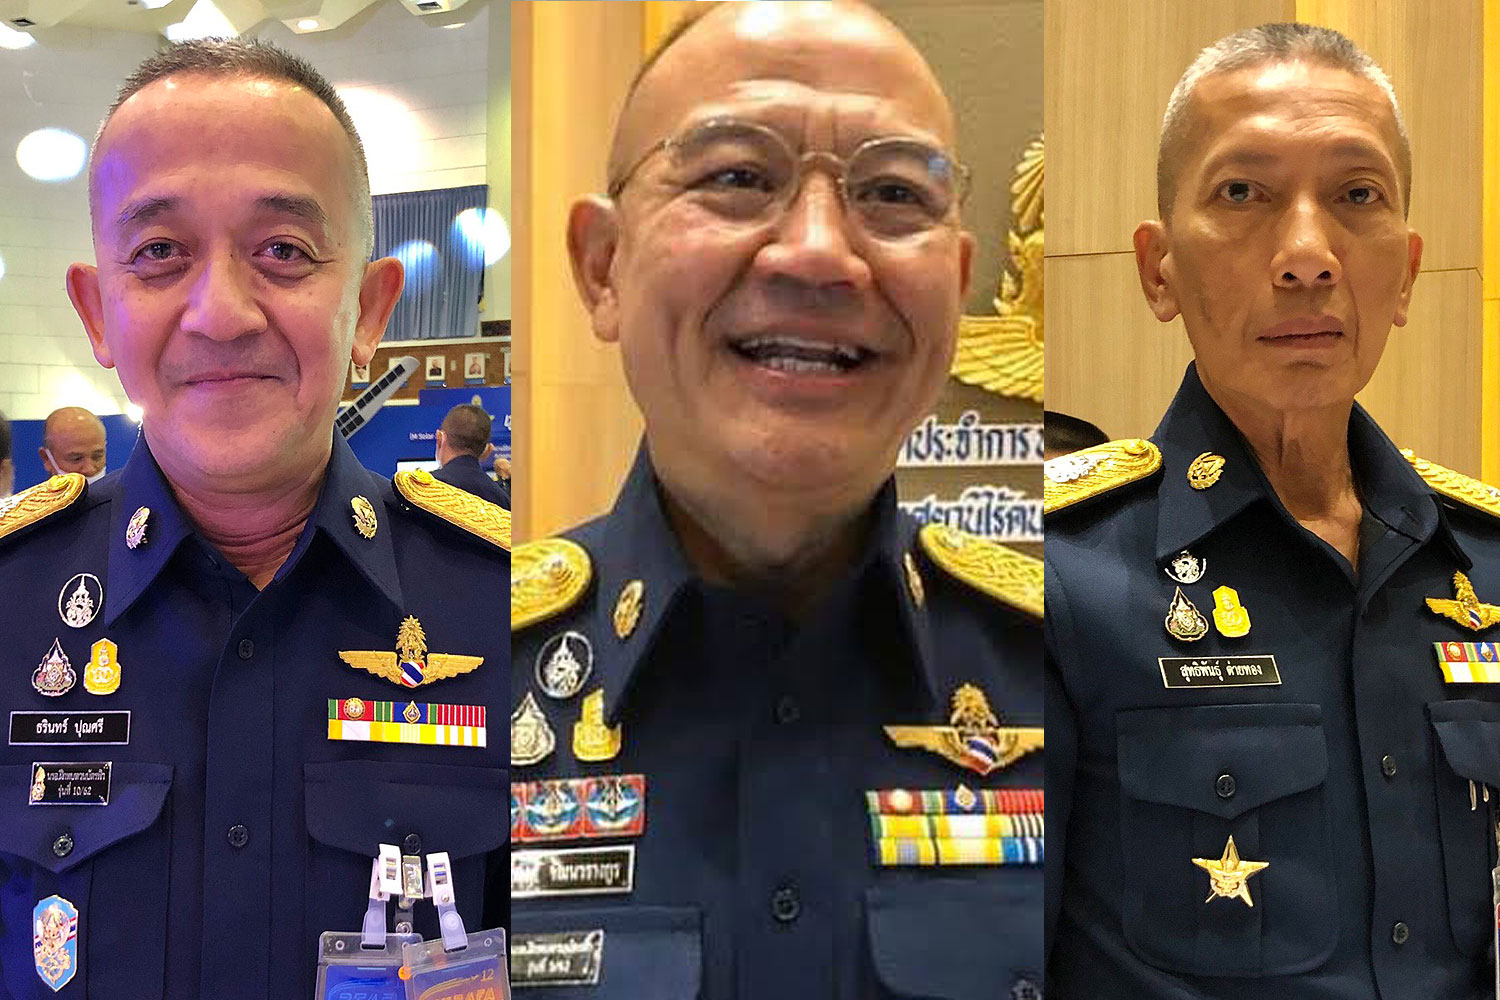 Three new candidates for the post of Royal Thai Air Force commander-in-chief (from left) ACM Tharin Punnasri, ACM Saritpong Wattanawarangkul and ACM Sutthipun Taithong.